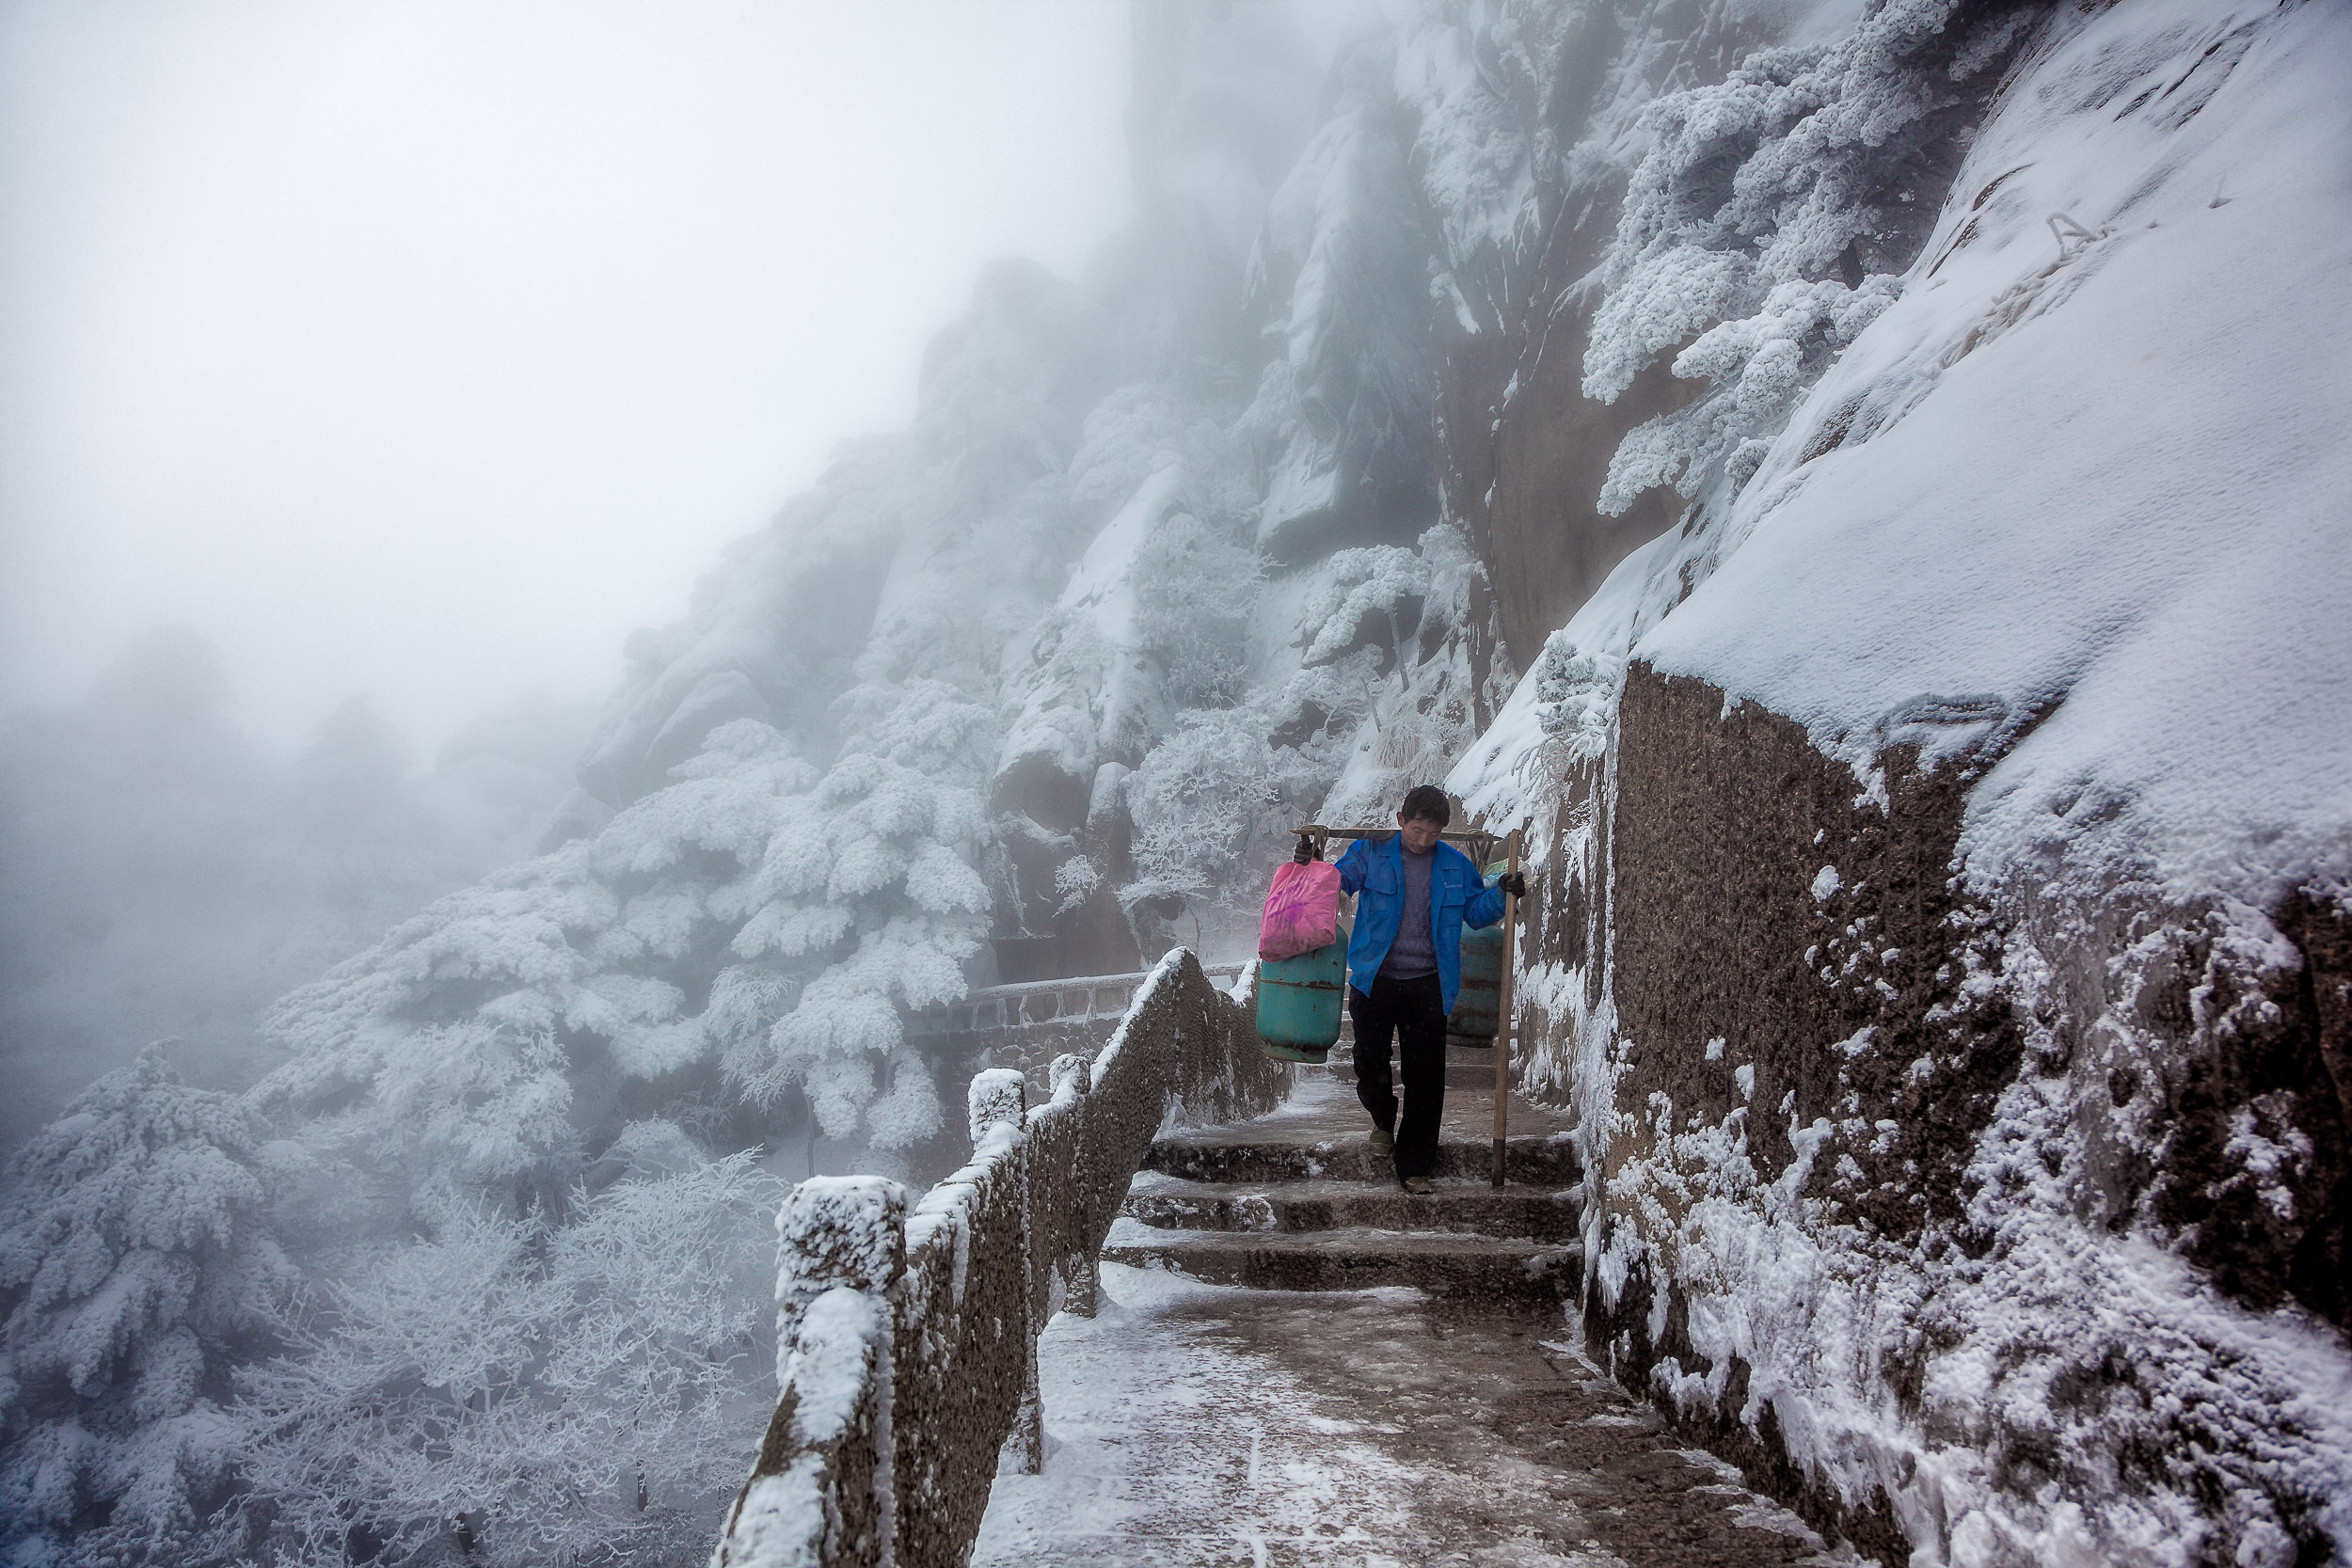 A    porter    walks a windy and exposed path on    Huangshan    in China.